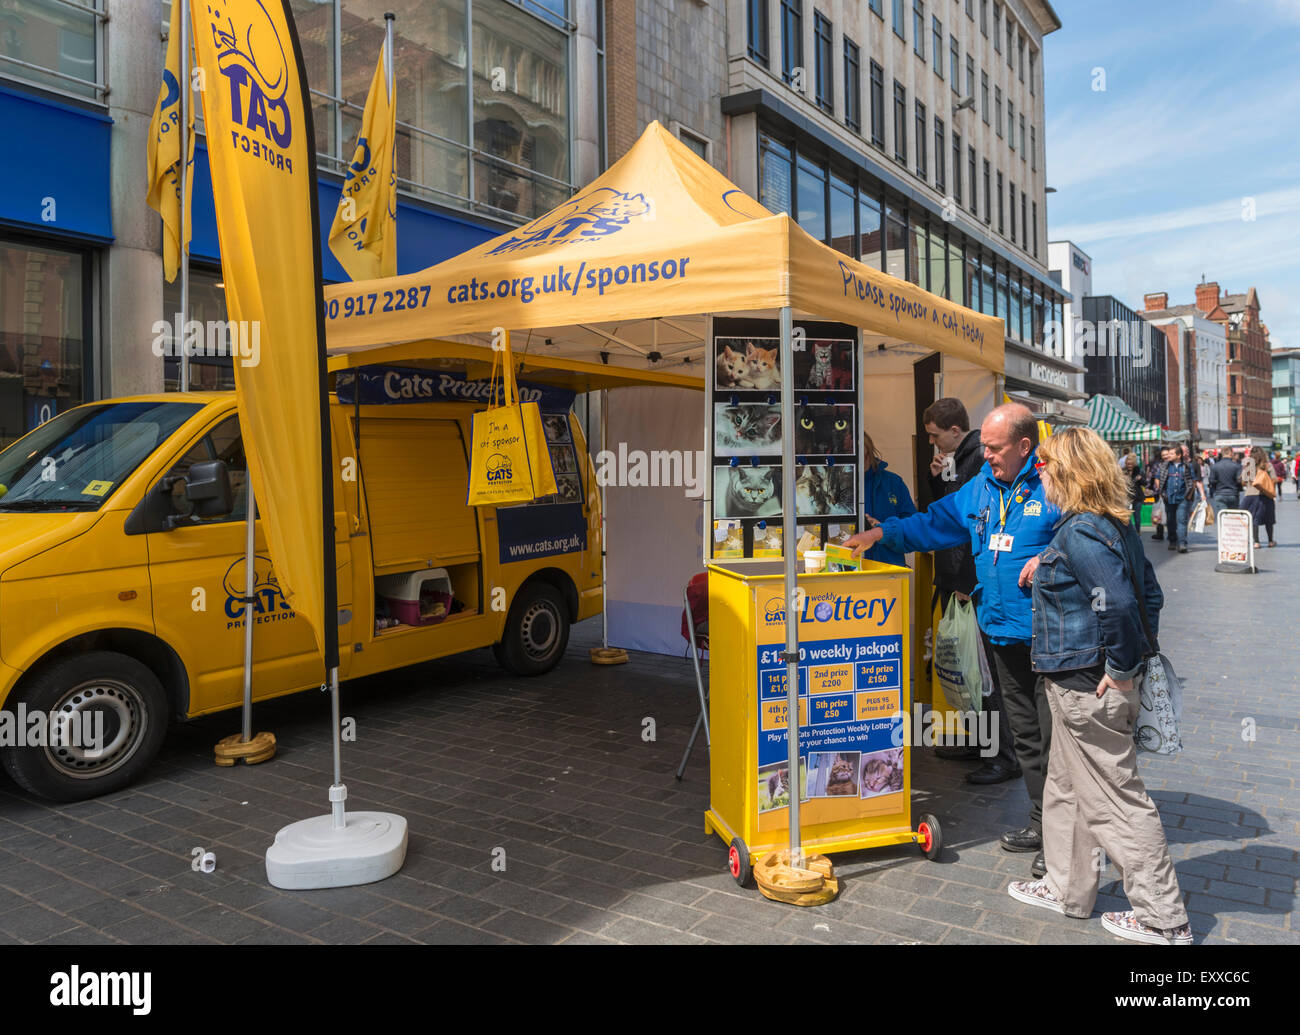 Cats Protection animal welfare charity stand in a city street, England, UK - Stock Image